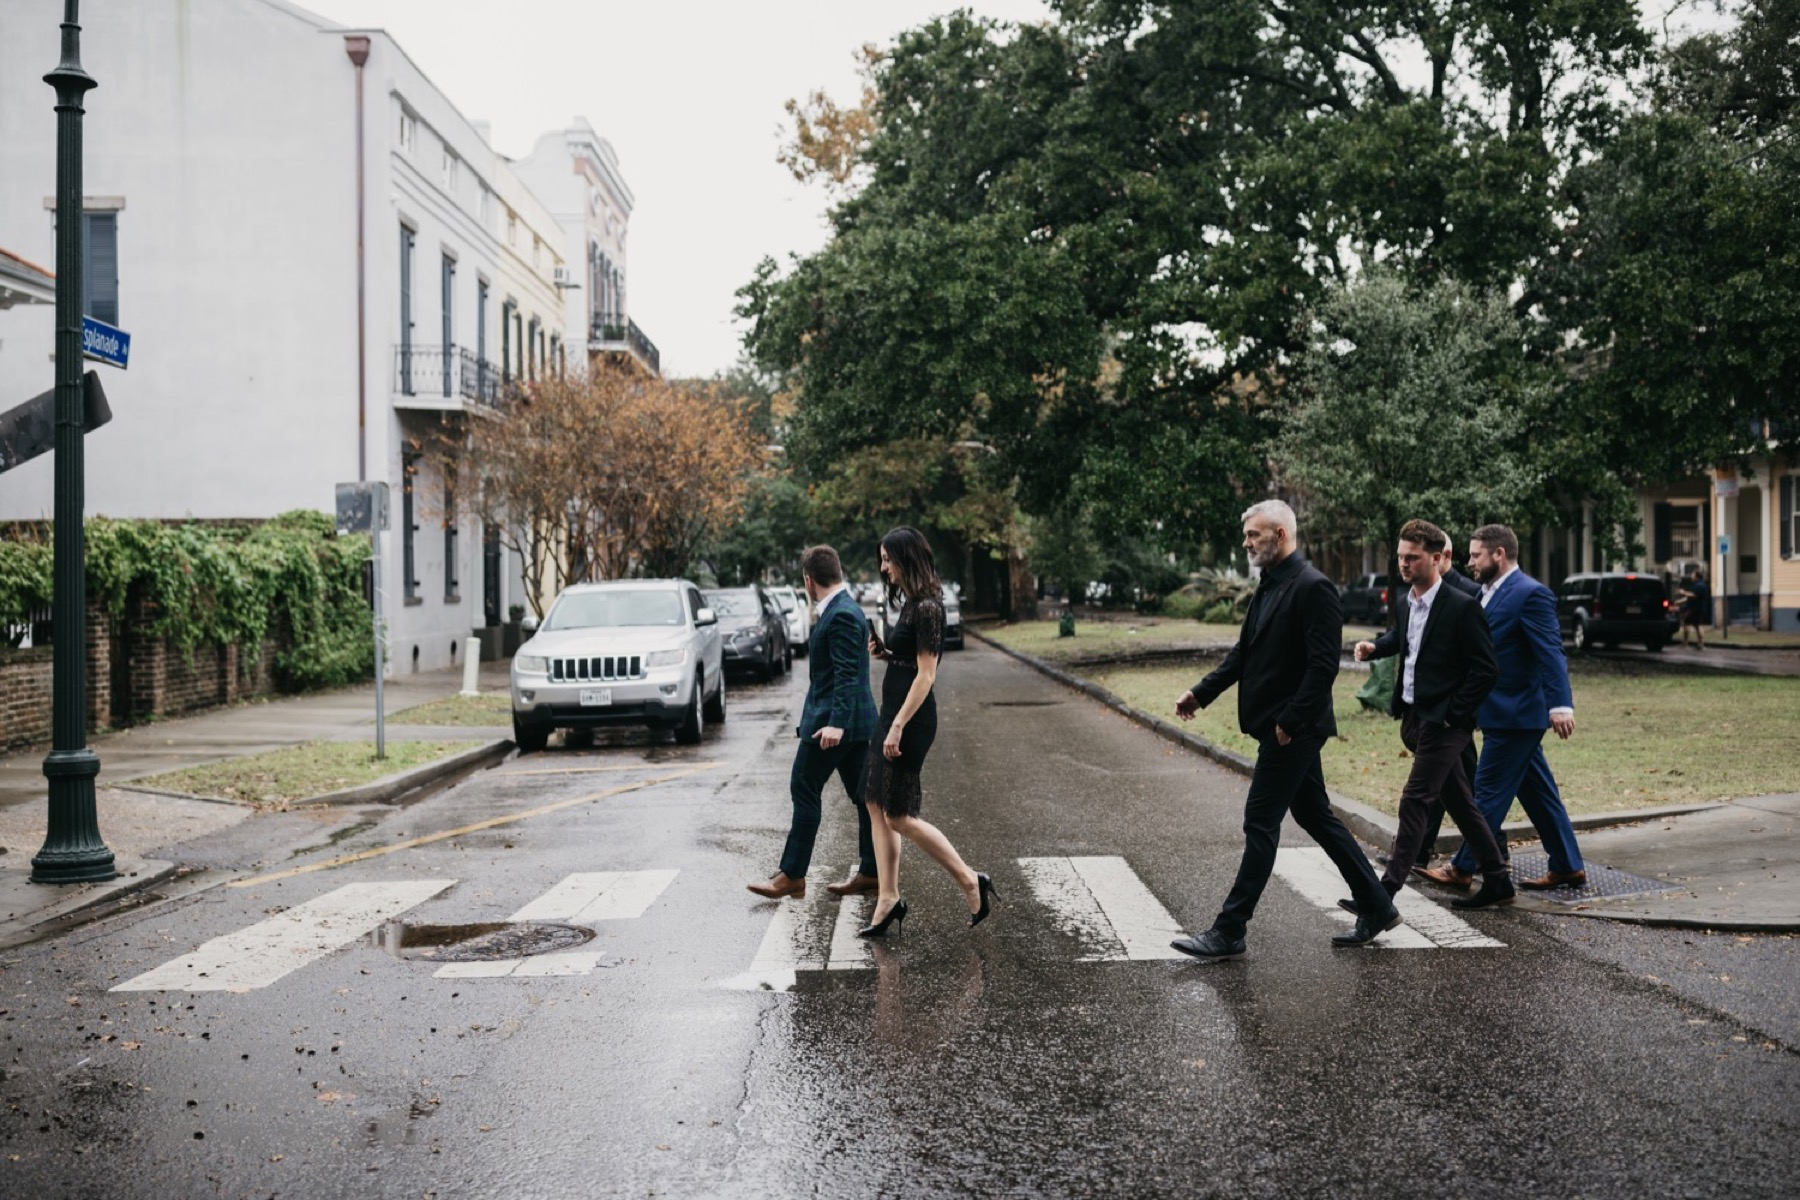 Rainy French Quarter Elopement, Rainy NOLA wedding, French Quarter Elopement Ideas, Ideas for Eloping in New Orleans, Unique Elopement Ideas in New Orleans, NOLA Fun Elopement, NOLA Interesting Elopement, NOLA Wedding Ideas, Wedding Ideas for New Orleans, Fun New Orleans Wedding, Gay Elopement New Orleans, New Orleans Gay Elopement, New Orleans Gay Wedding, New Orleans Wedding Photographer, New Orleans Elopement Photographer,